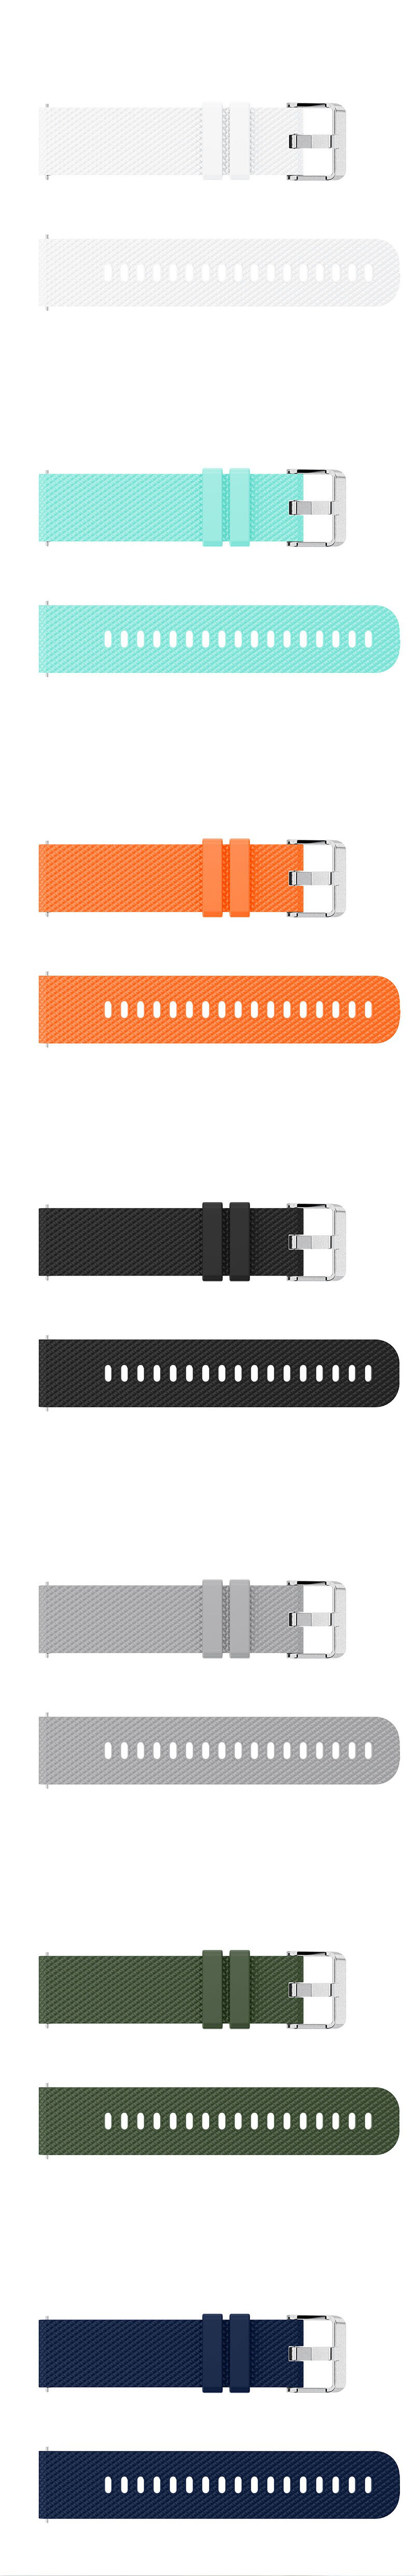 Colorful Silicone 20mm Watch Band Soft Wristband Replacement For Garmin Vivoactive3 Vivomove HR